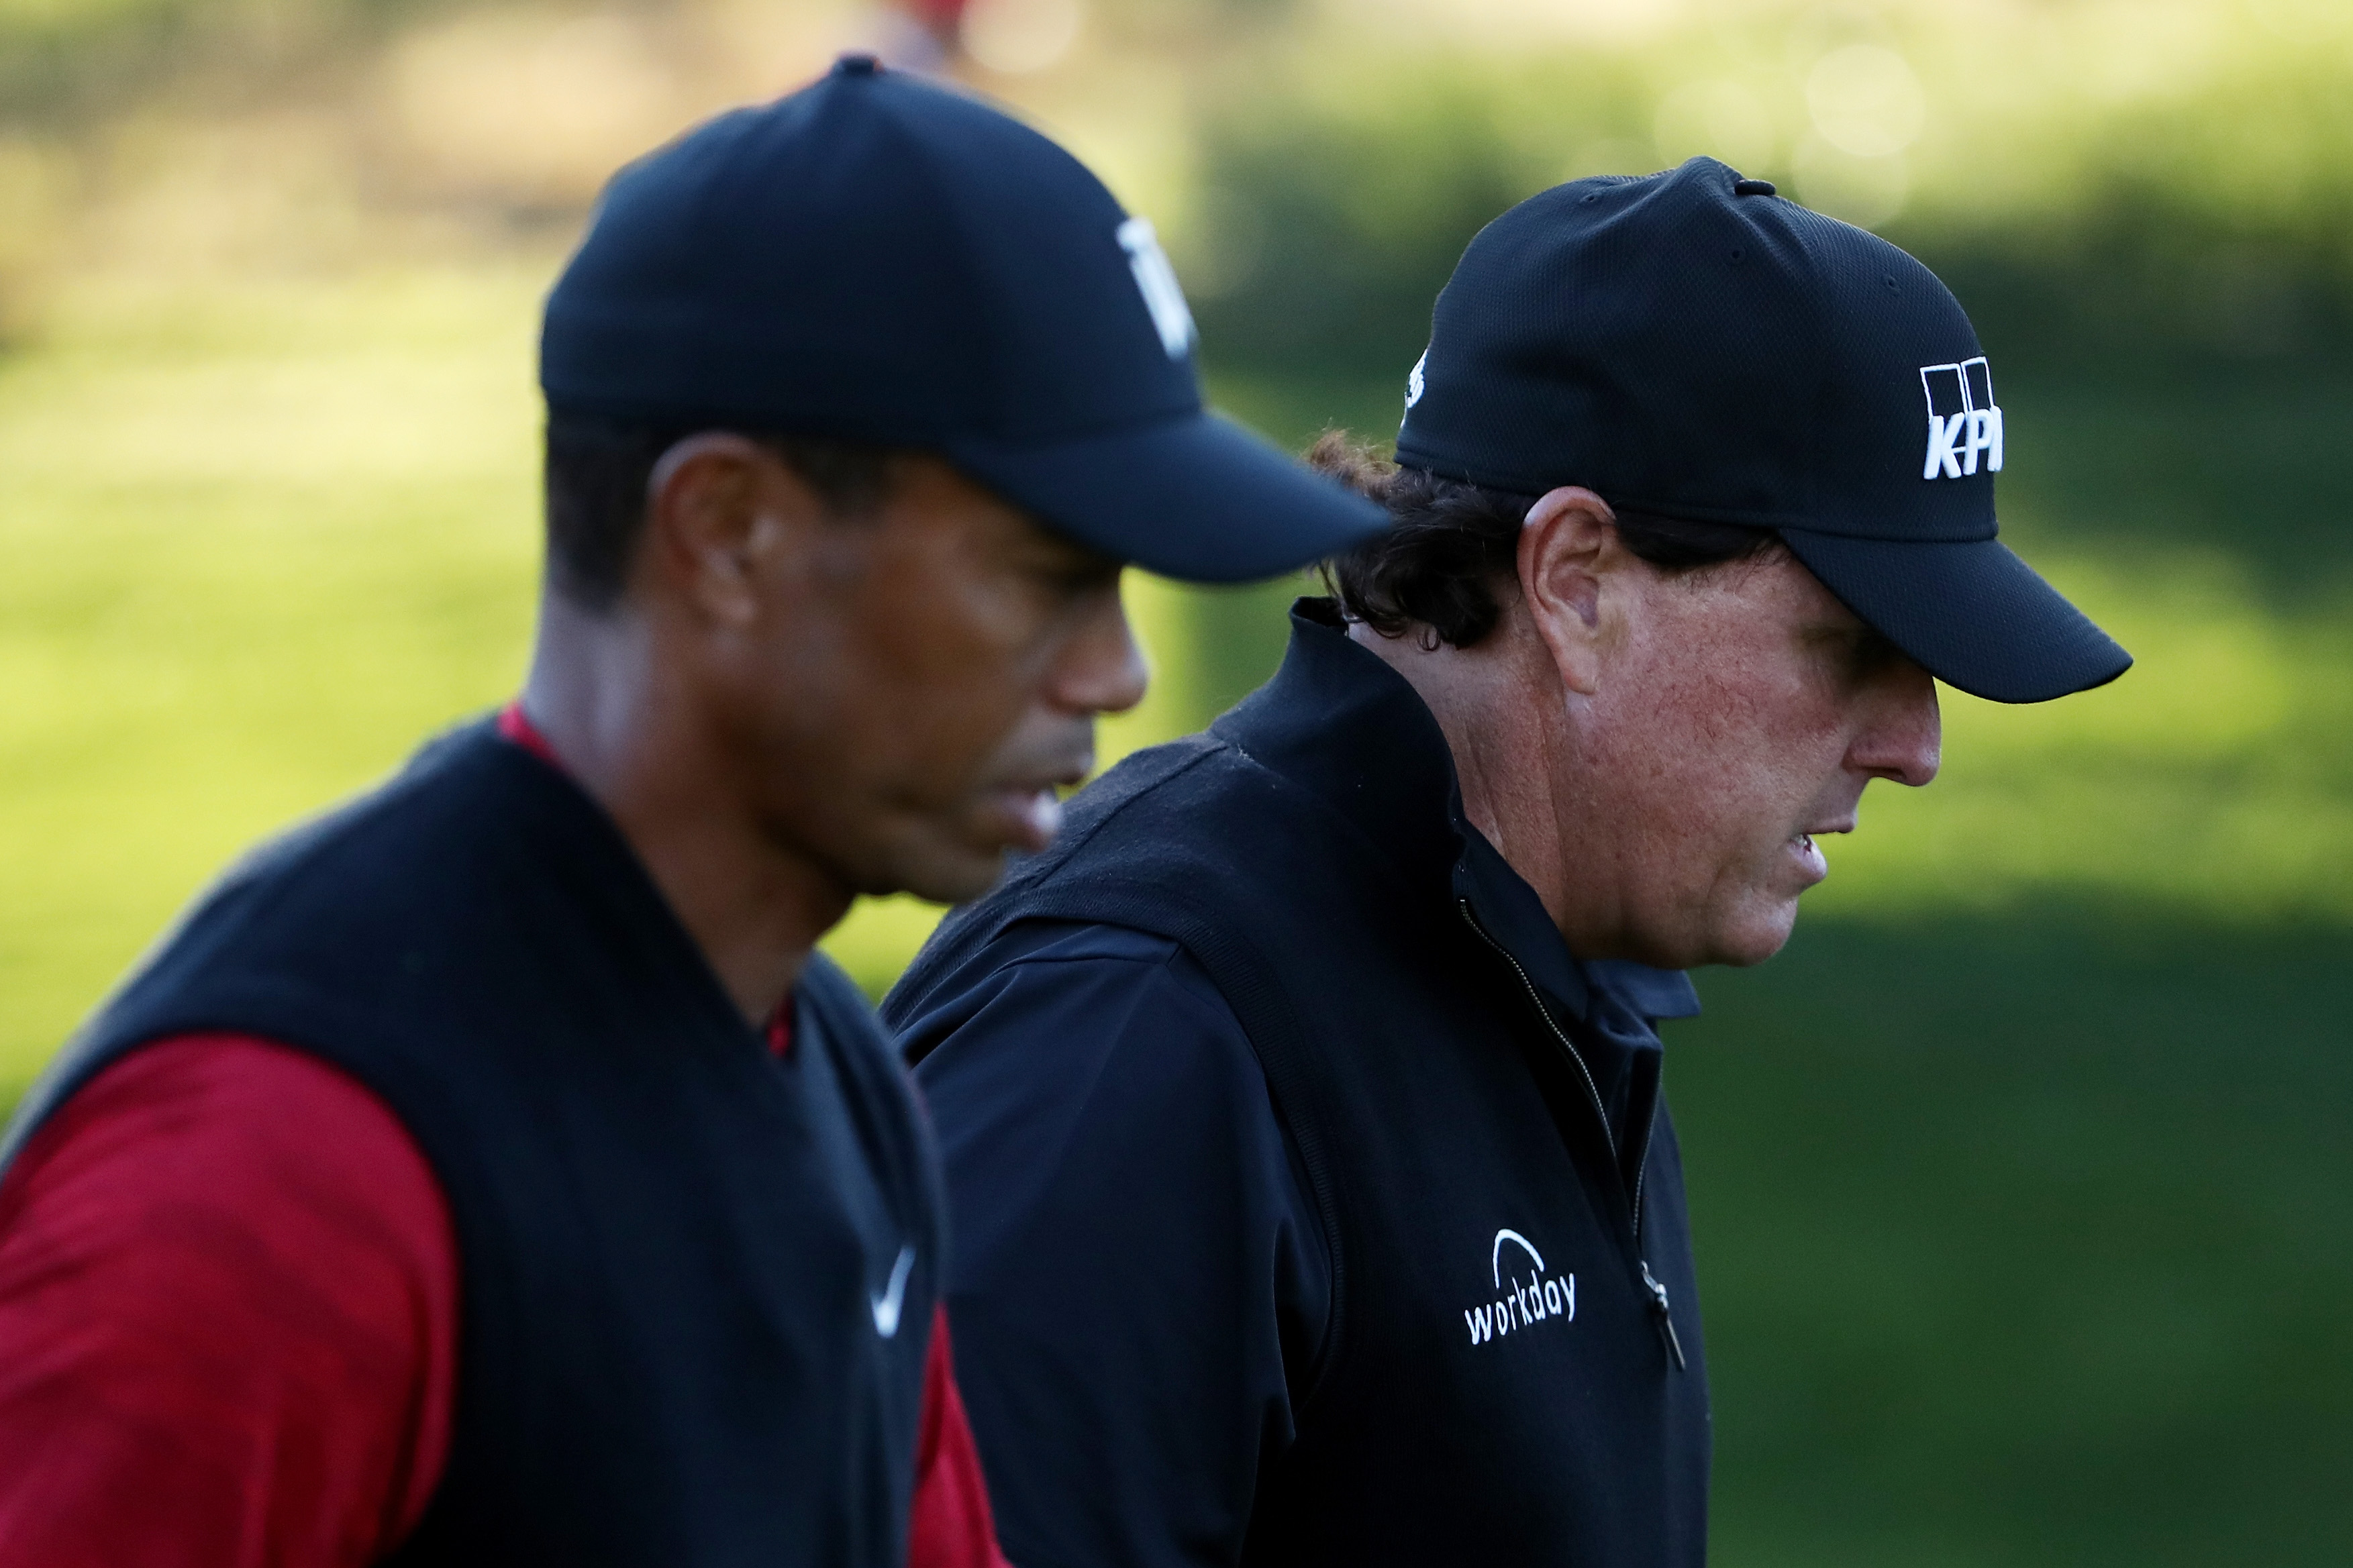 Phil Mickelson showed some love to Tiger Woods in a Twitter post. t